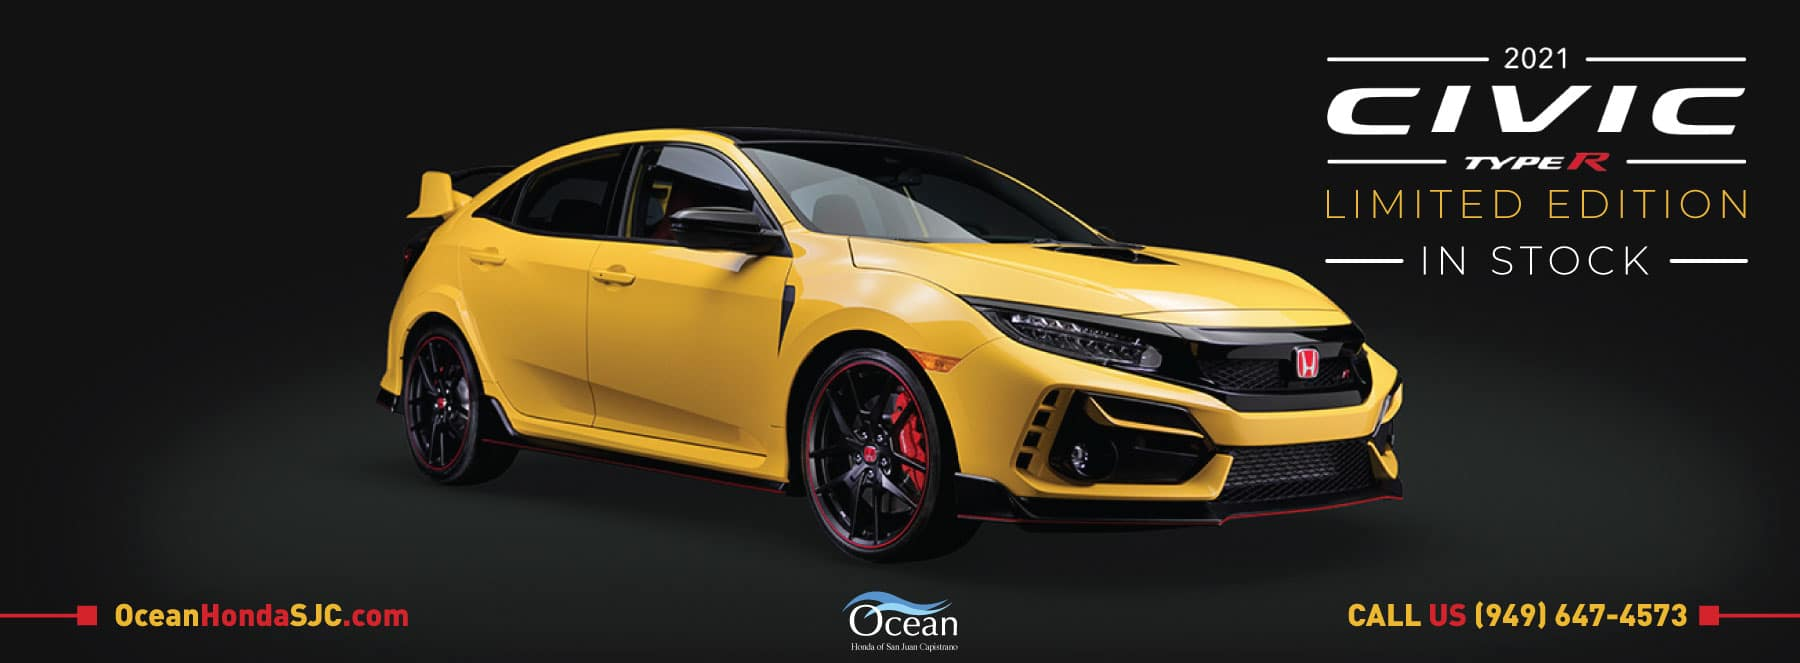 2021 Civic Type R Limited Edition - In Stock